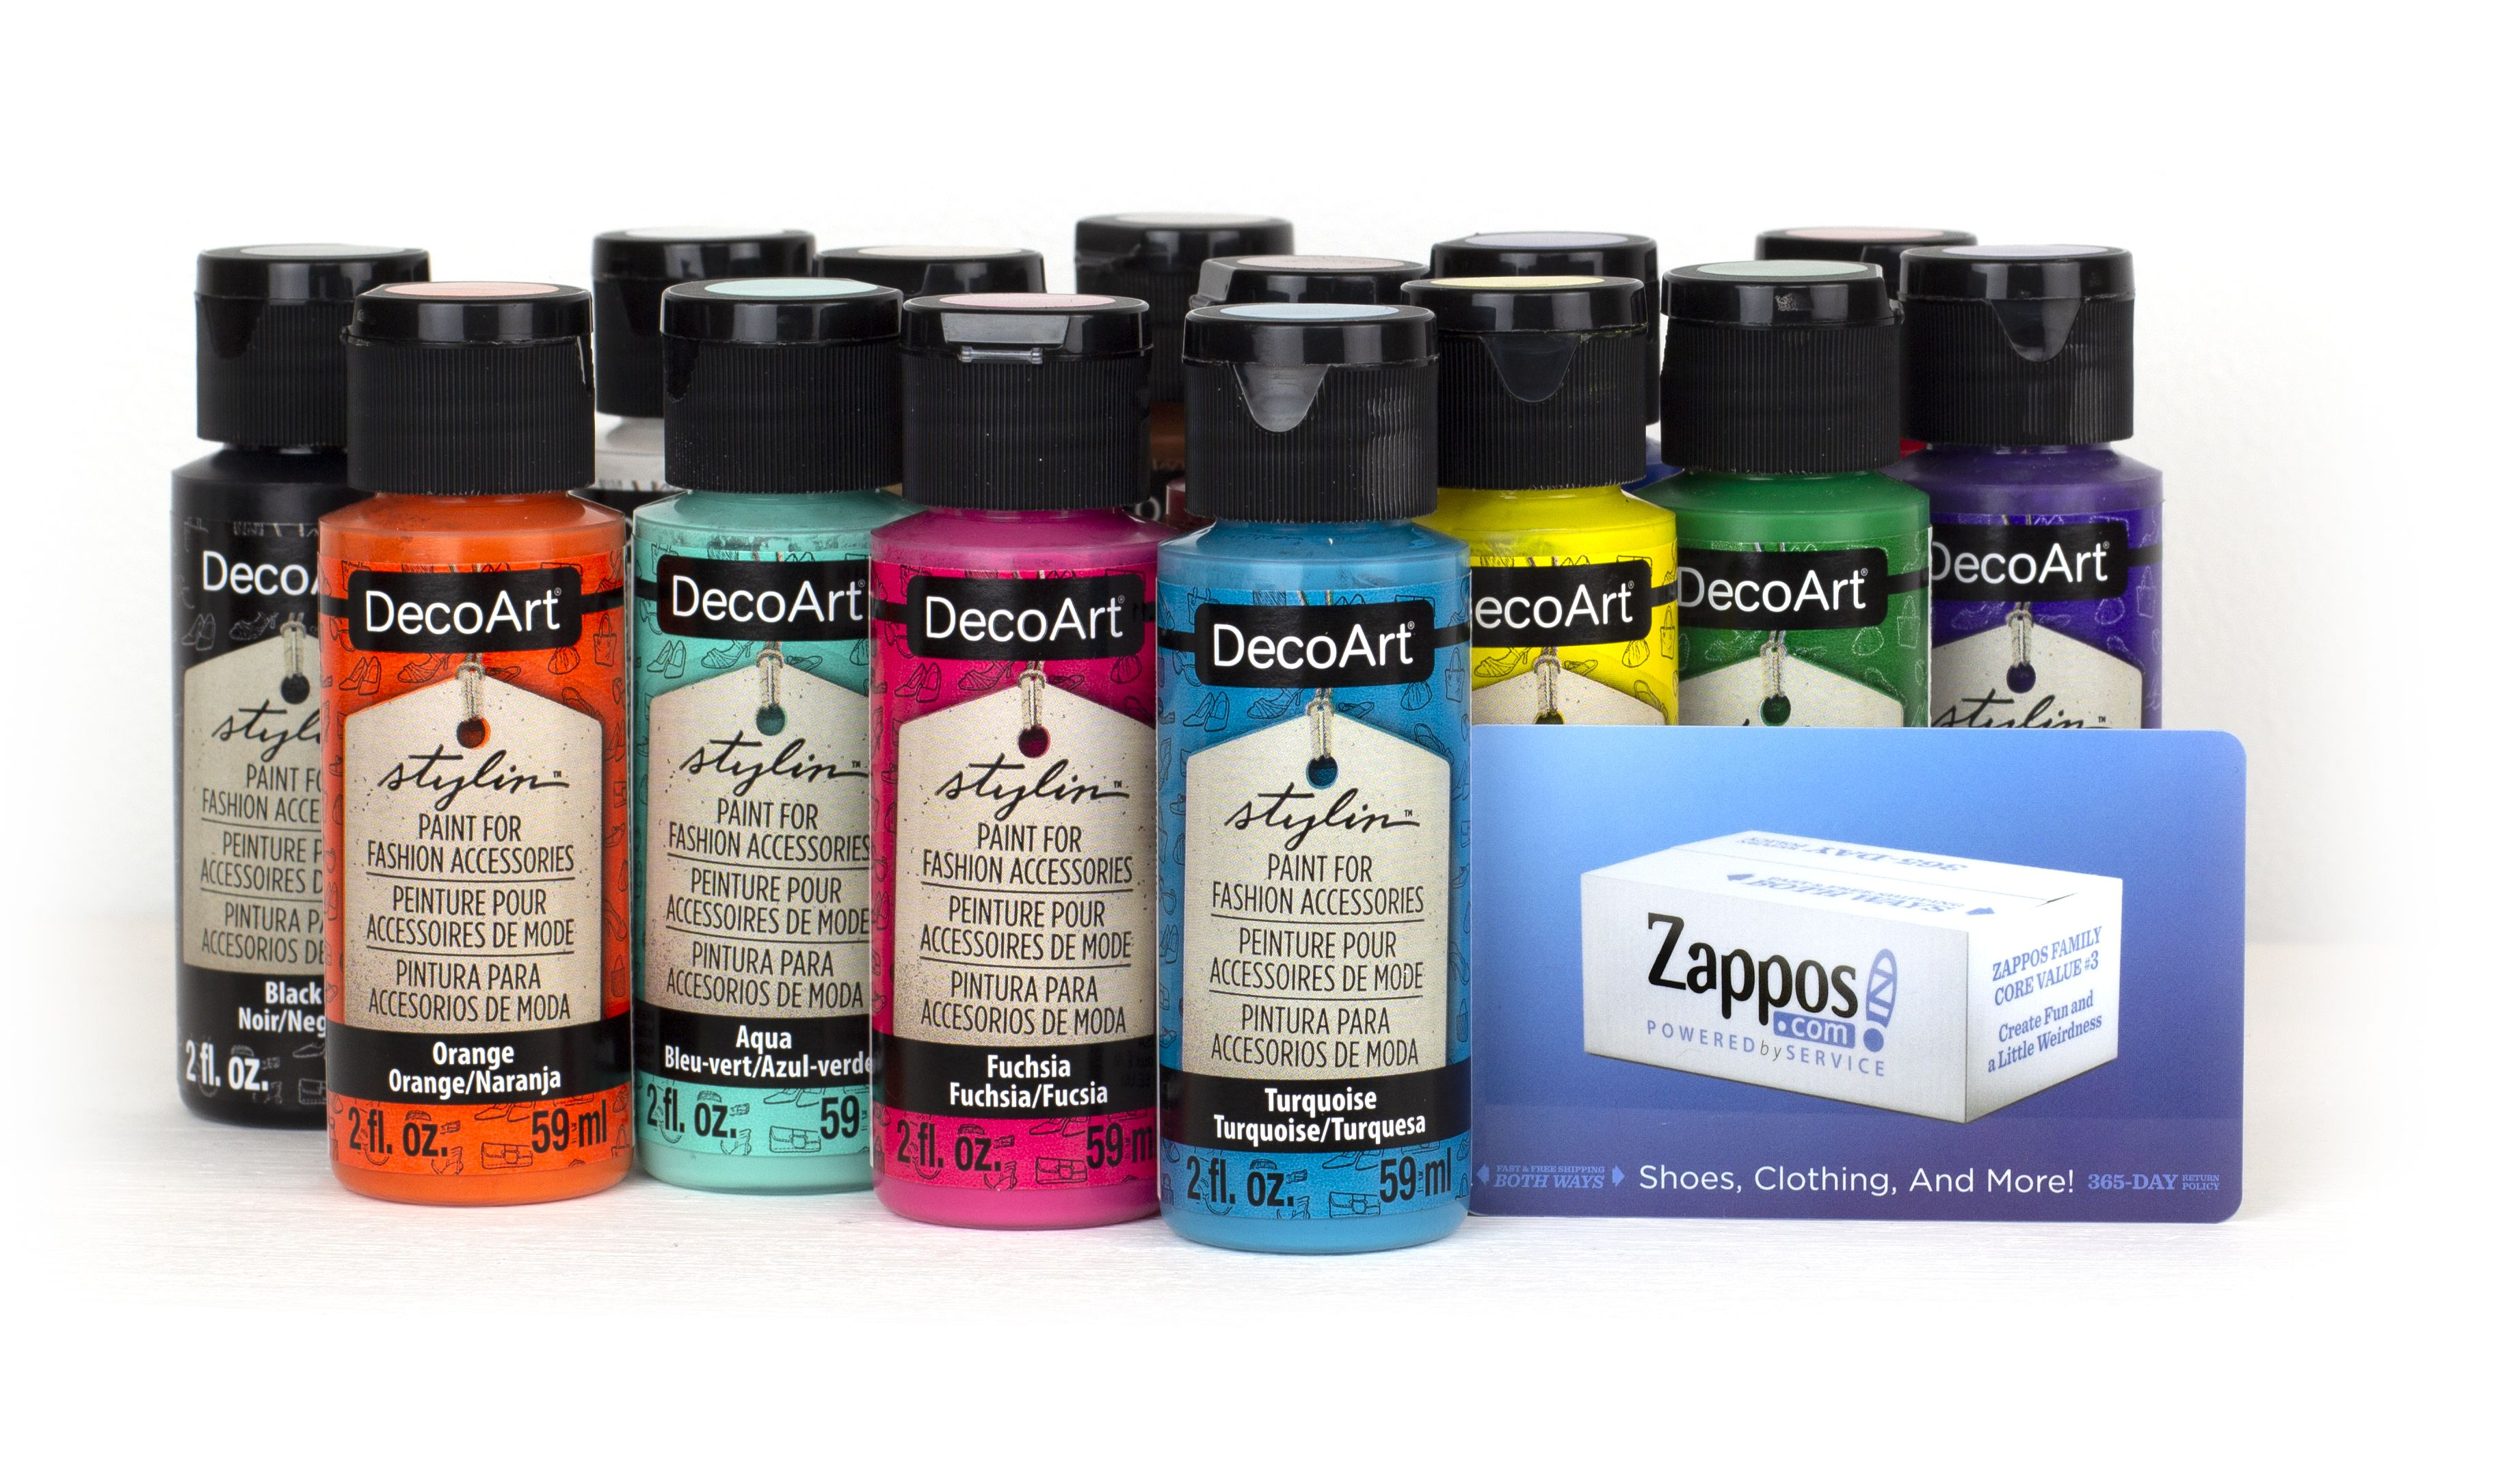 Decoart stylin paint prize pack giveaway with images